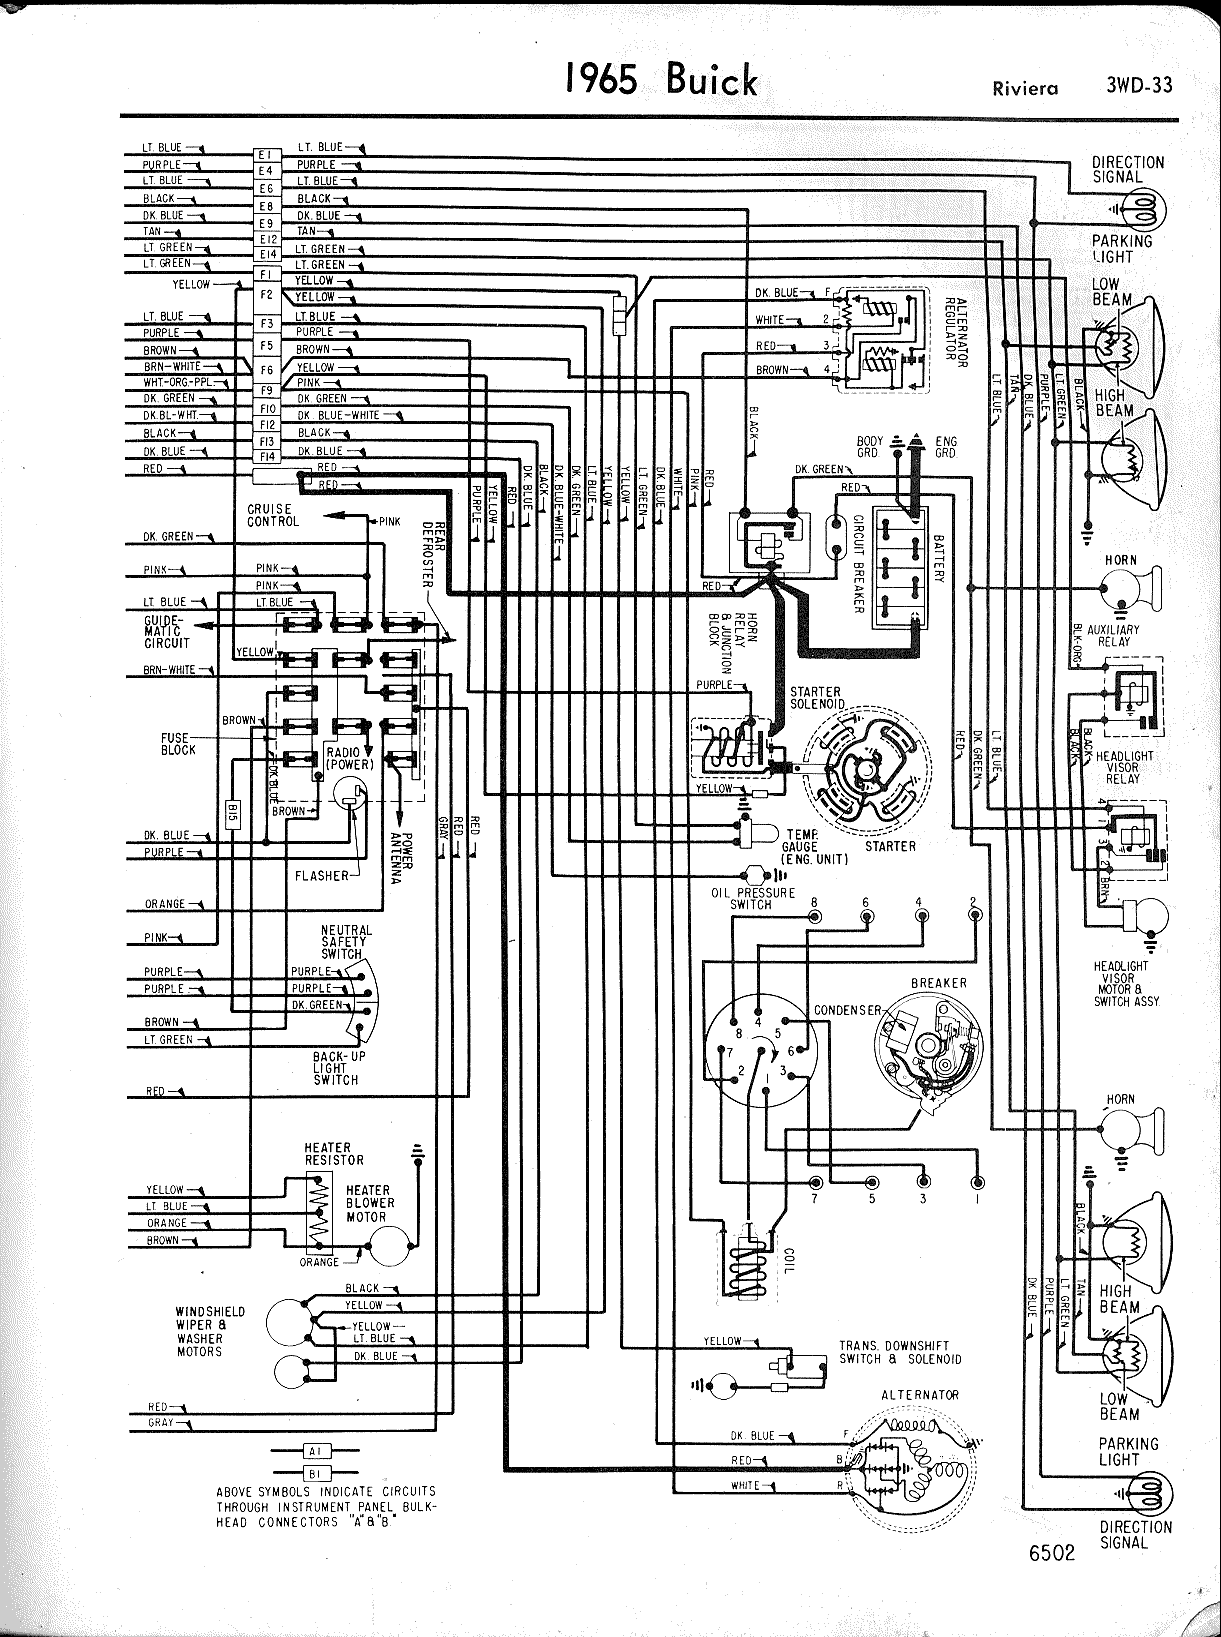 hight resolution of 1970 buick skylark wiring diagram wiring diagrams 1965 buick skylark ignition schematic wiring diagram 1972 buick skylark